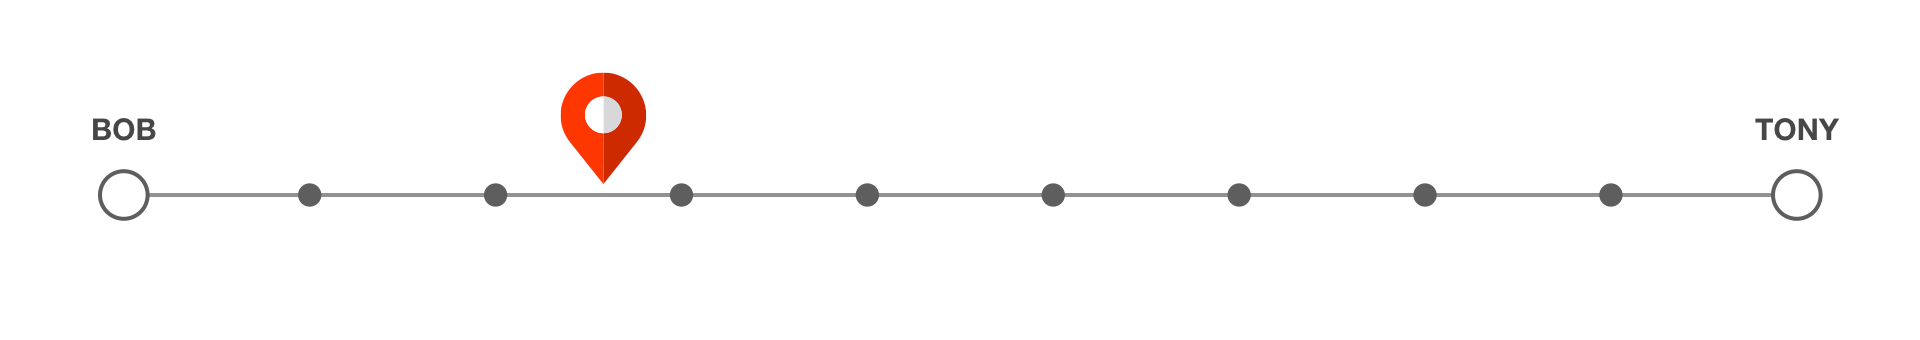 A horizontal progress bar with different positions for the perceived progress as opposed to actual progress.